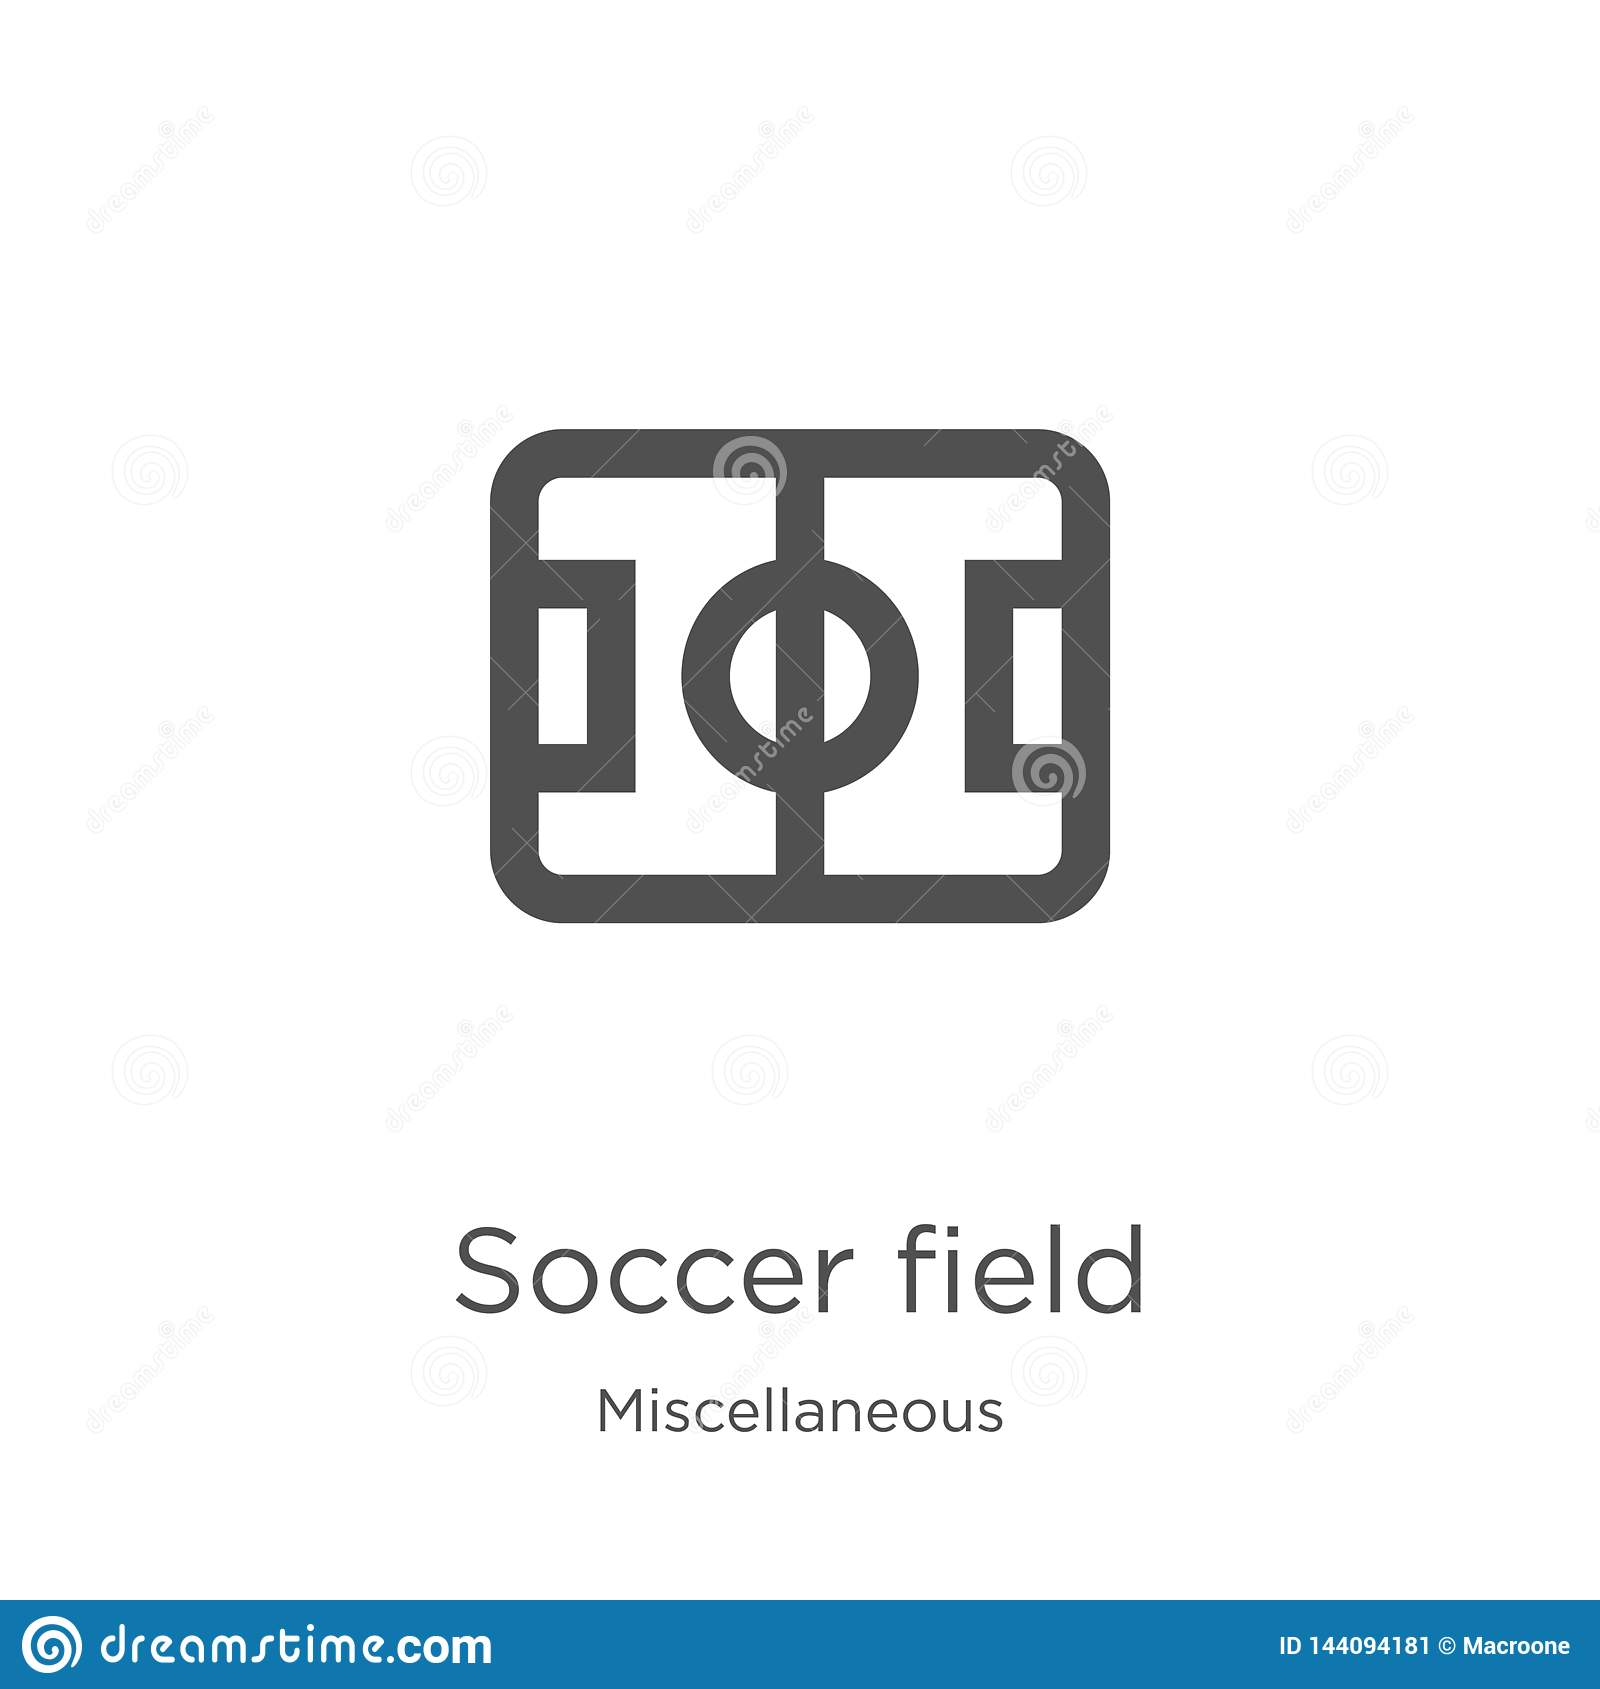 soccer field icon vector from miscellaneous collection. Thin line soccer field outline icon vector illustration. Outline, thin